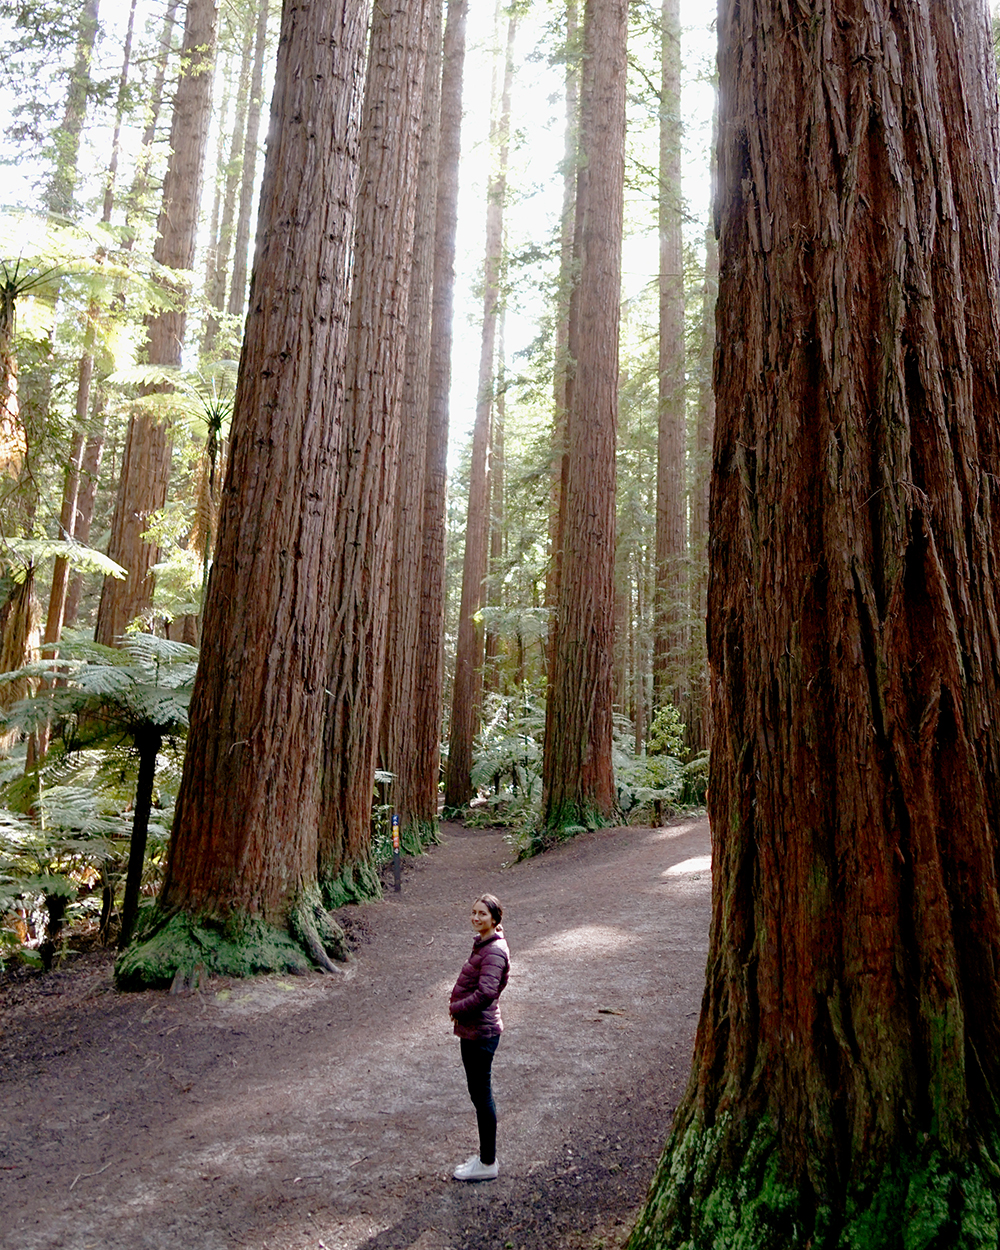 If you were keeping up with the Duke and Duchess of Sussex's first overseas tour as a married couple you will know that they ended it with a trip to the Redwoods forest. I couldn't resist copying the photo that Harry took of Meghan with her baby bump but NO I am not pregnant, this is not an announcement photo.